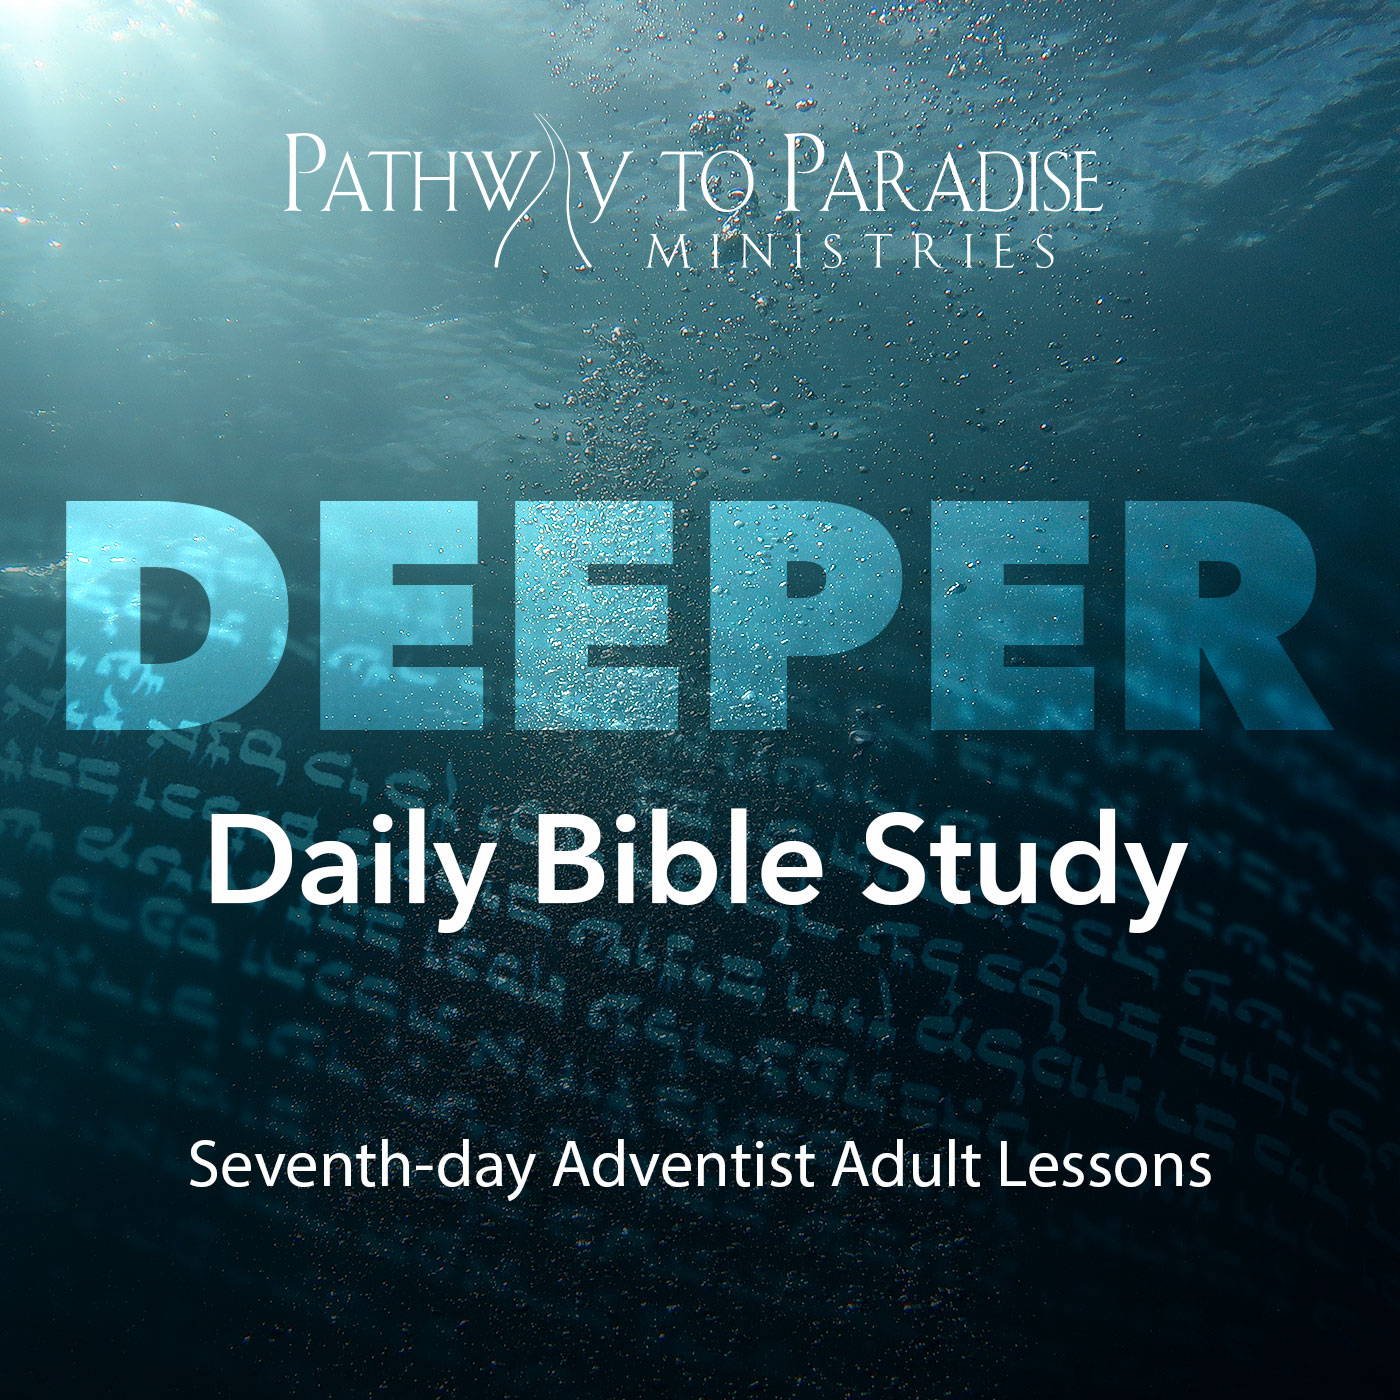 Deeper Daily Bible Study - Pathway to Paradise Ministries